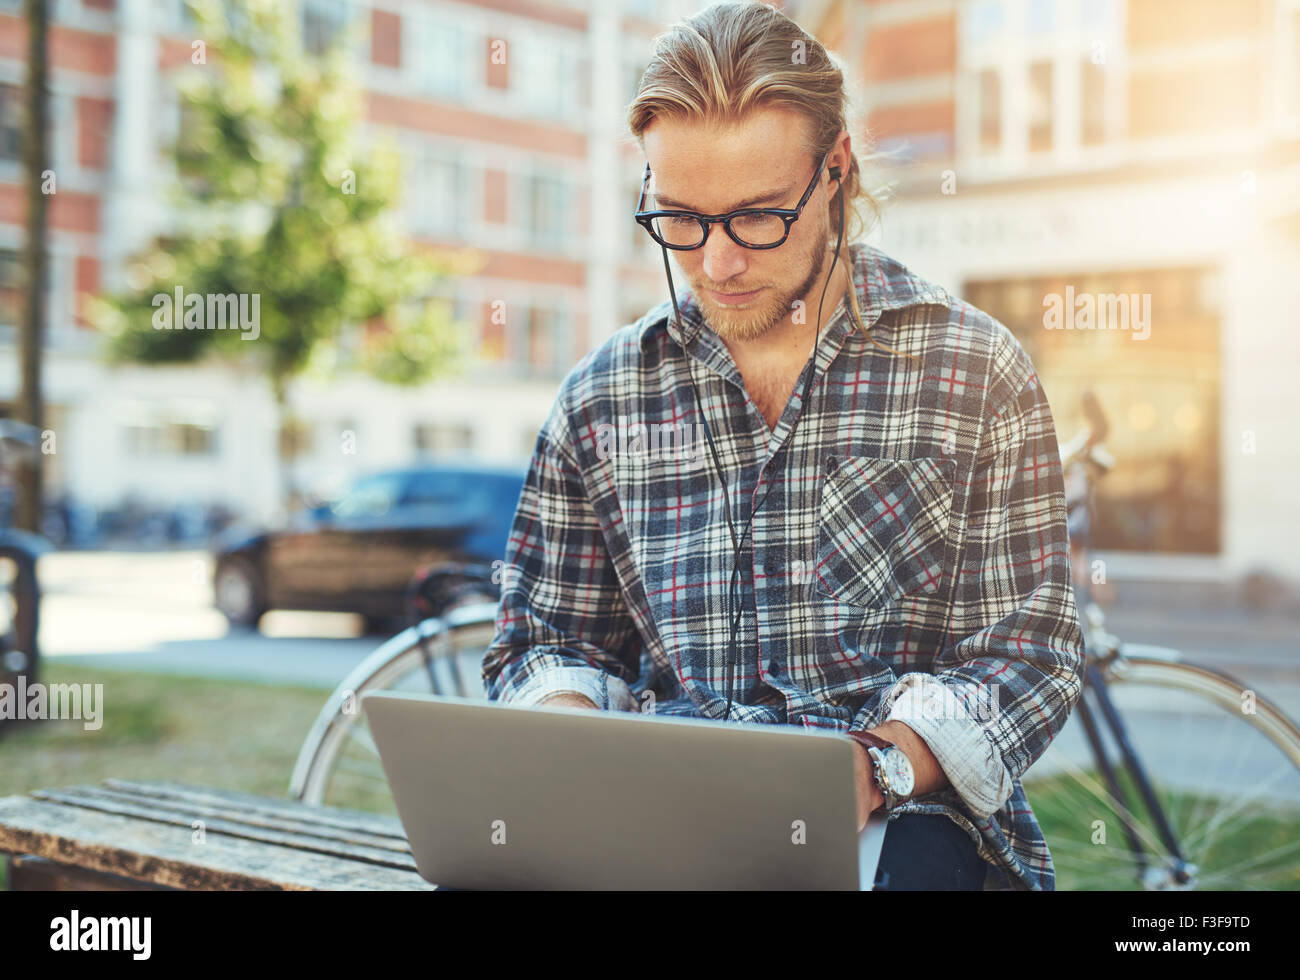 Concentrated young man with his laptop, sitting outside working - Stock Image